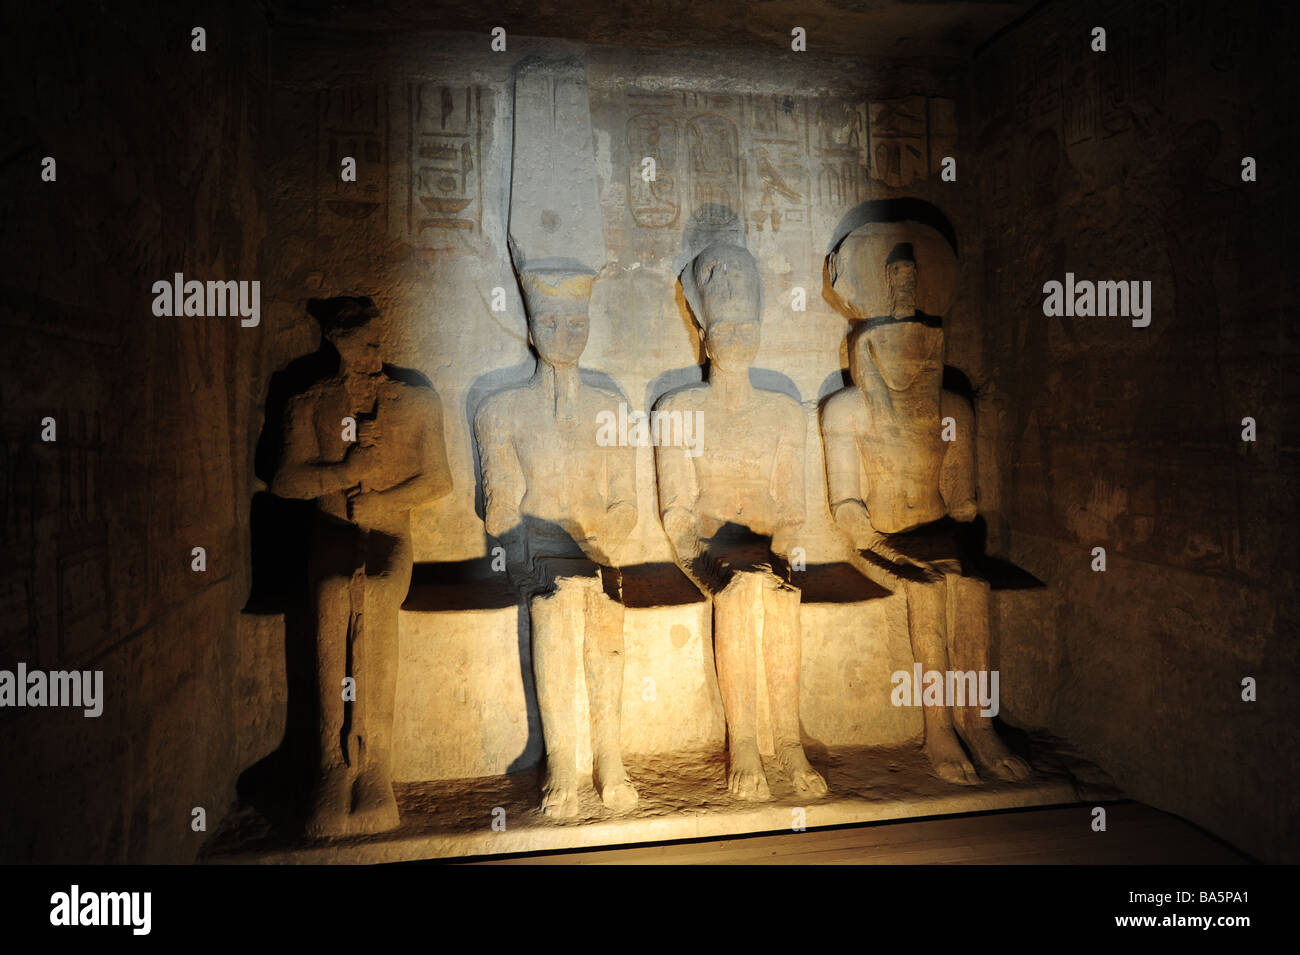 egypt-abu-simbel-temple-of-ramses-ii-interior-four-statues-of-the-BA5PA1.jpg